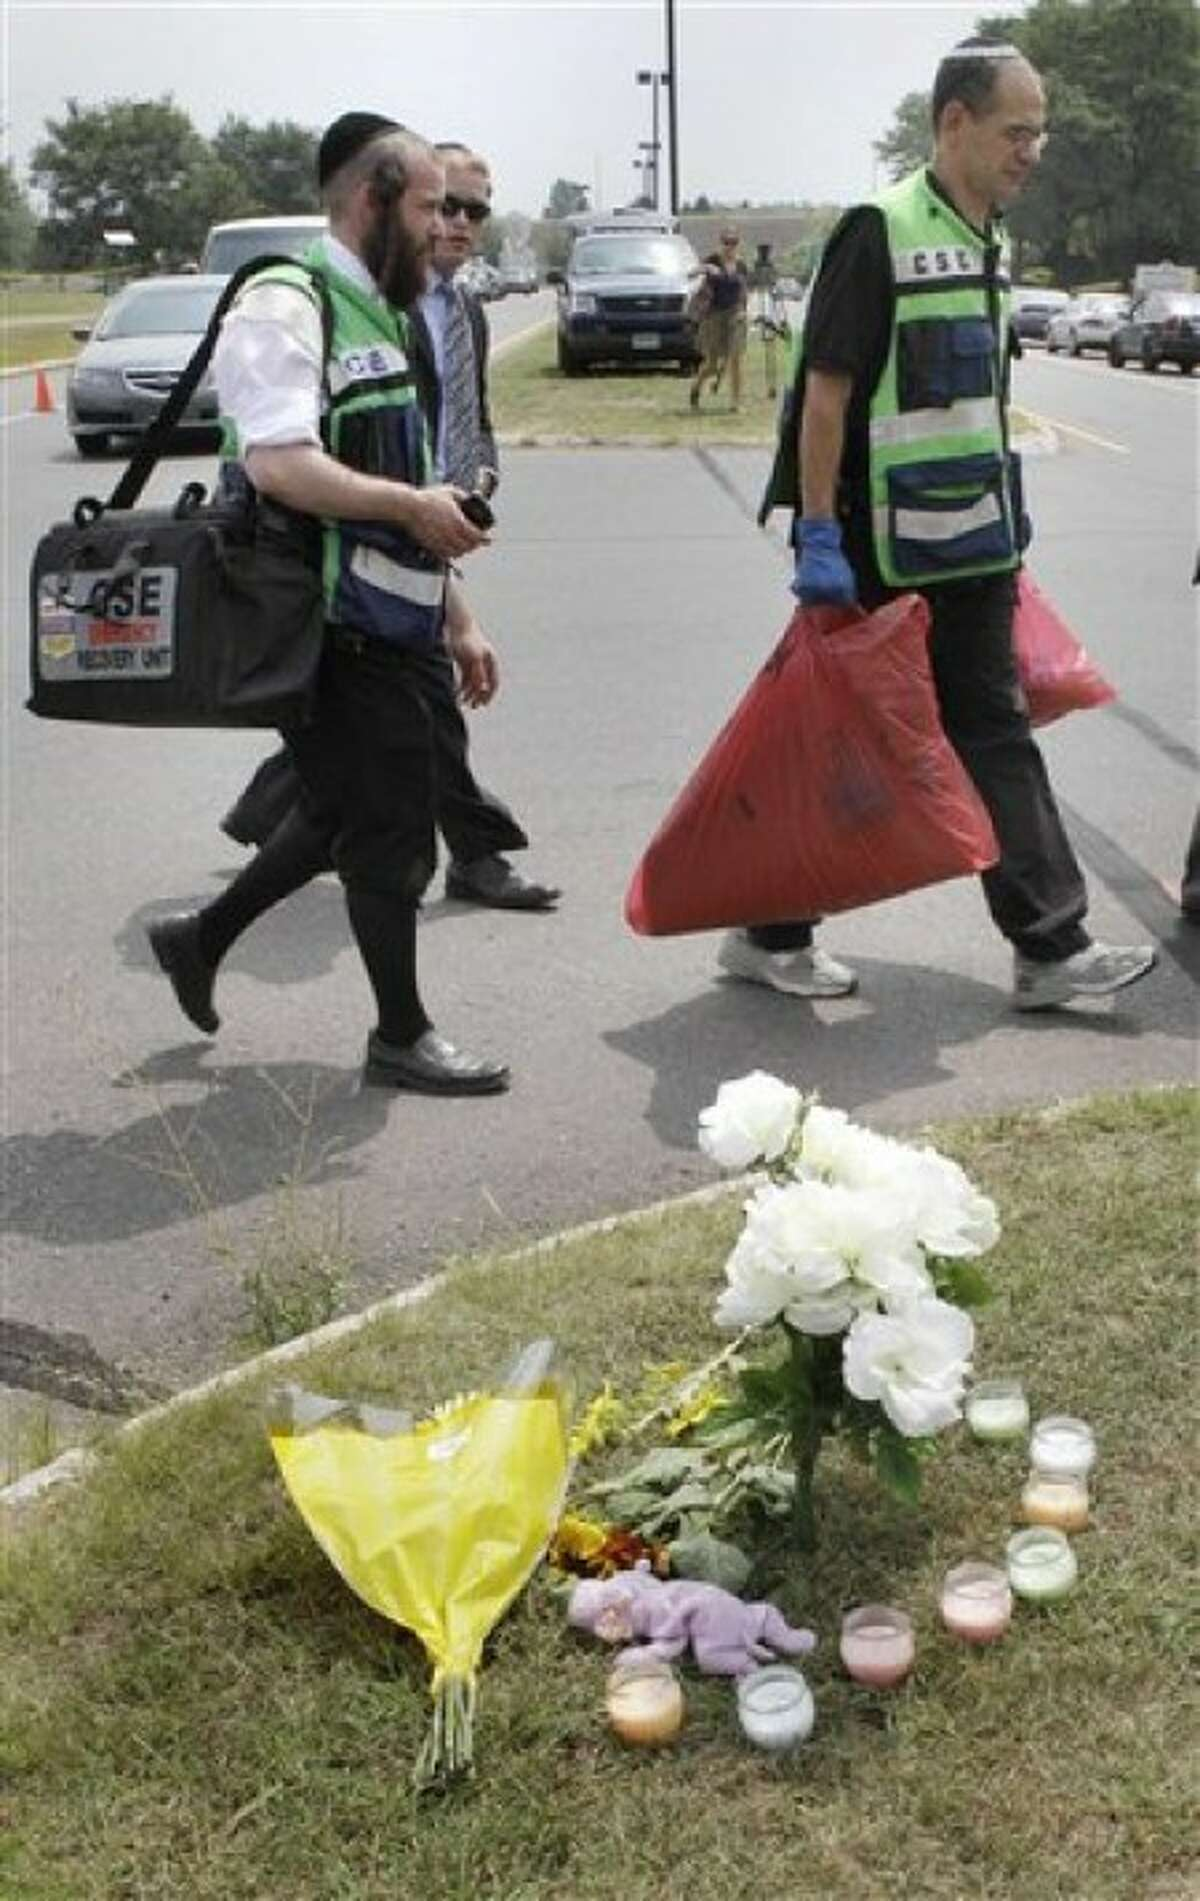 Rabbi Mayer Berger, left, follows a man carrying bags of bloodied fabric past a makeshift memorial outside the Hartford Distributors building, where a gunman killed eight people and himself on Tuesday, in Manchester, Conn., Wednesday, Aug. 4, 2010. (AP Photo/Charles Krupa)